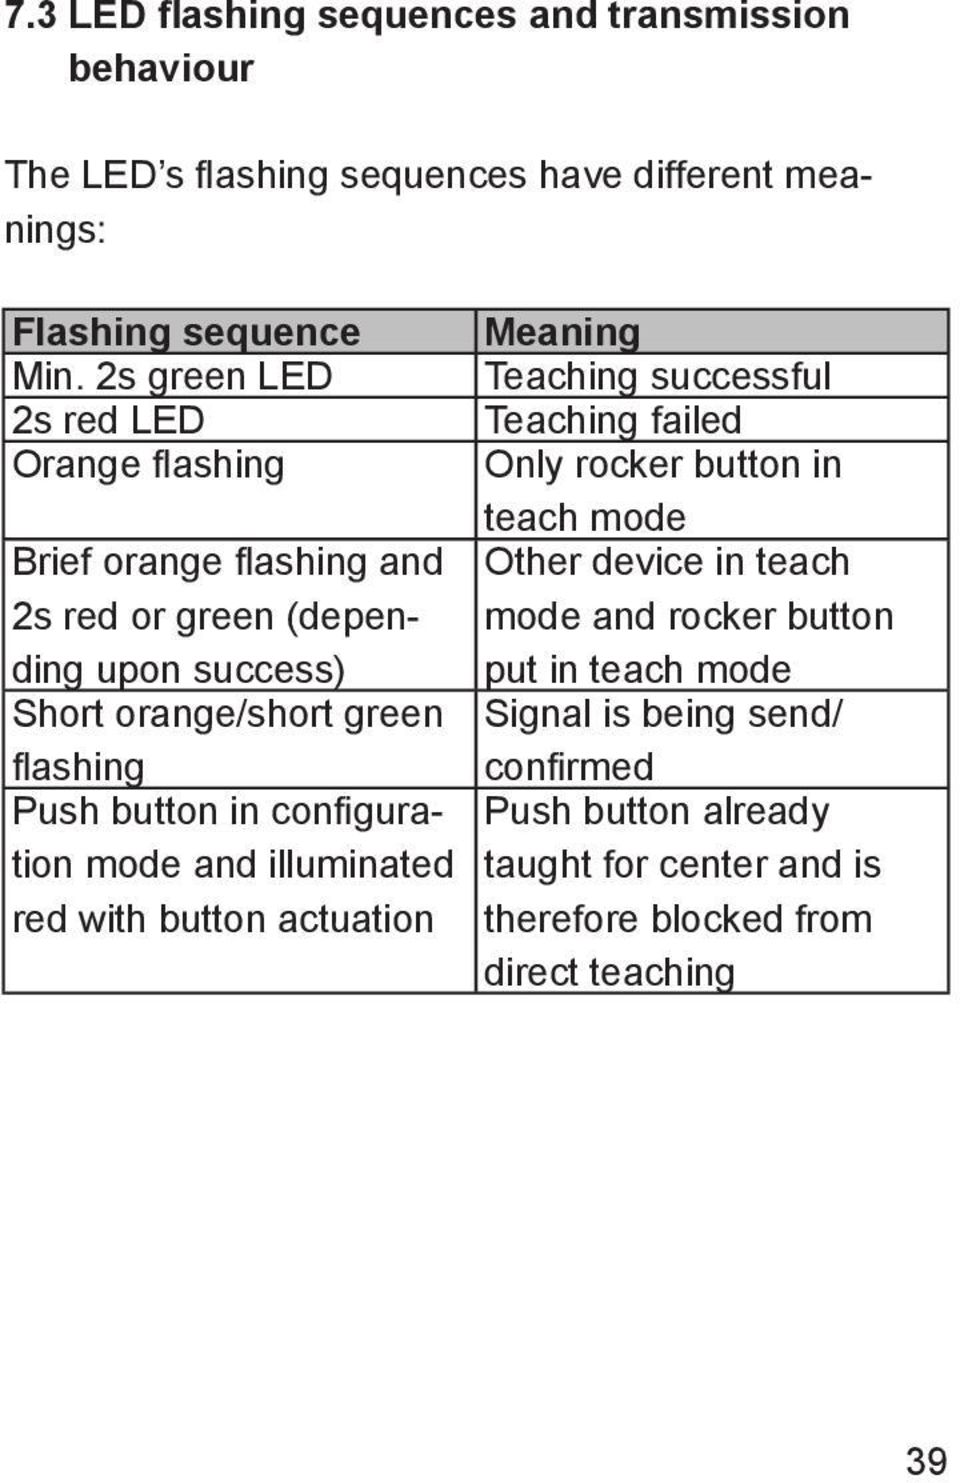 button in configuration mode and illuminated red with button actuation Meaning Teaching successful Teaching failed Only rocker button in teach mode